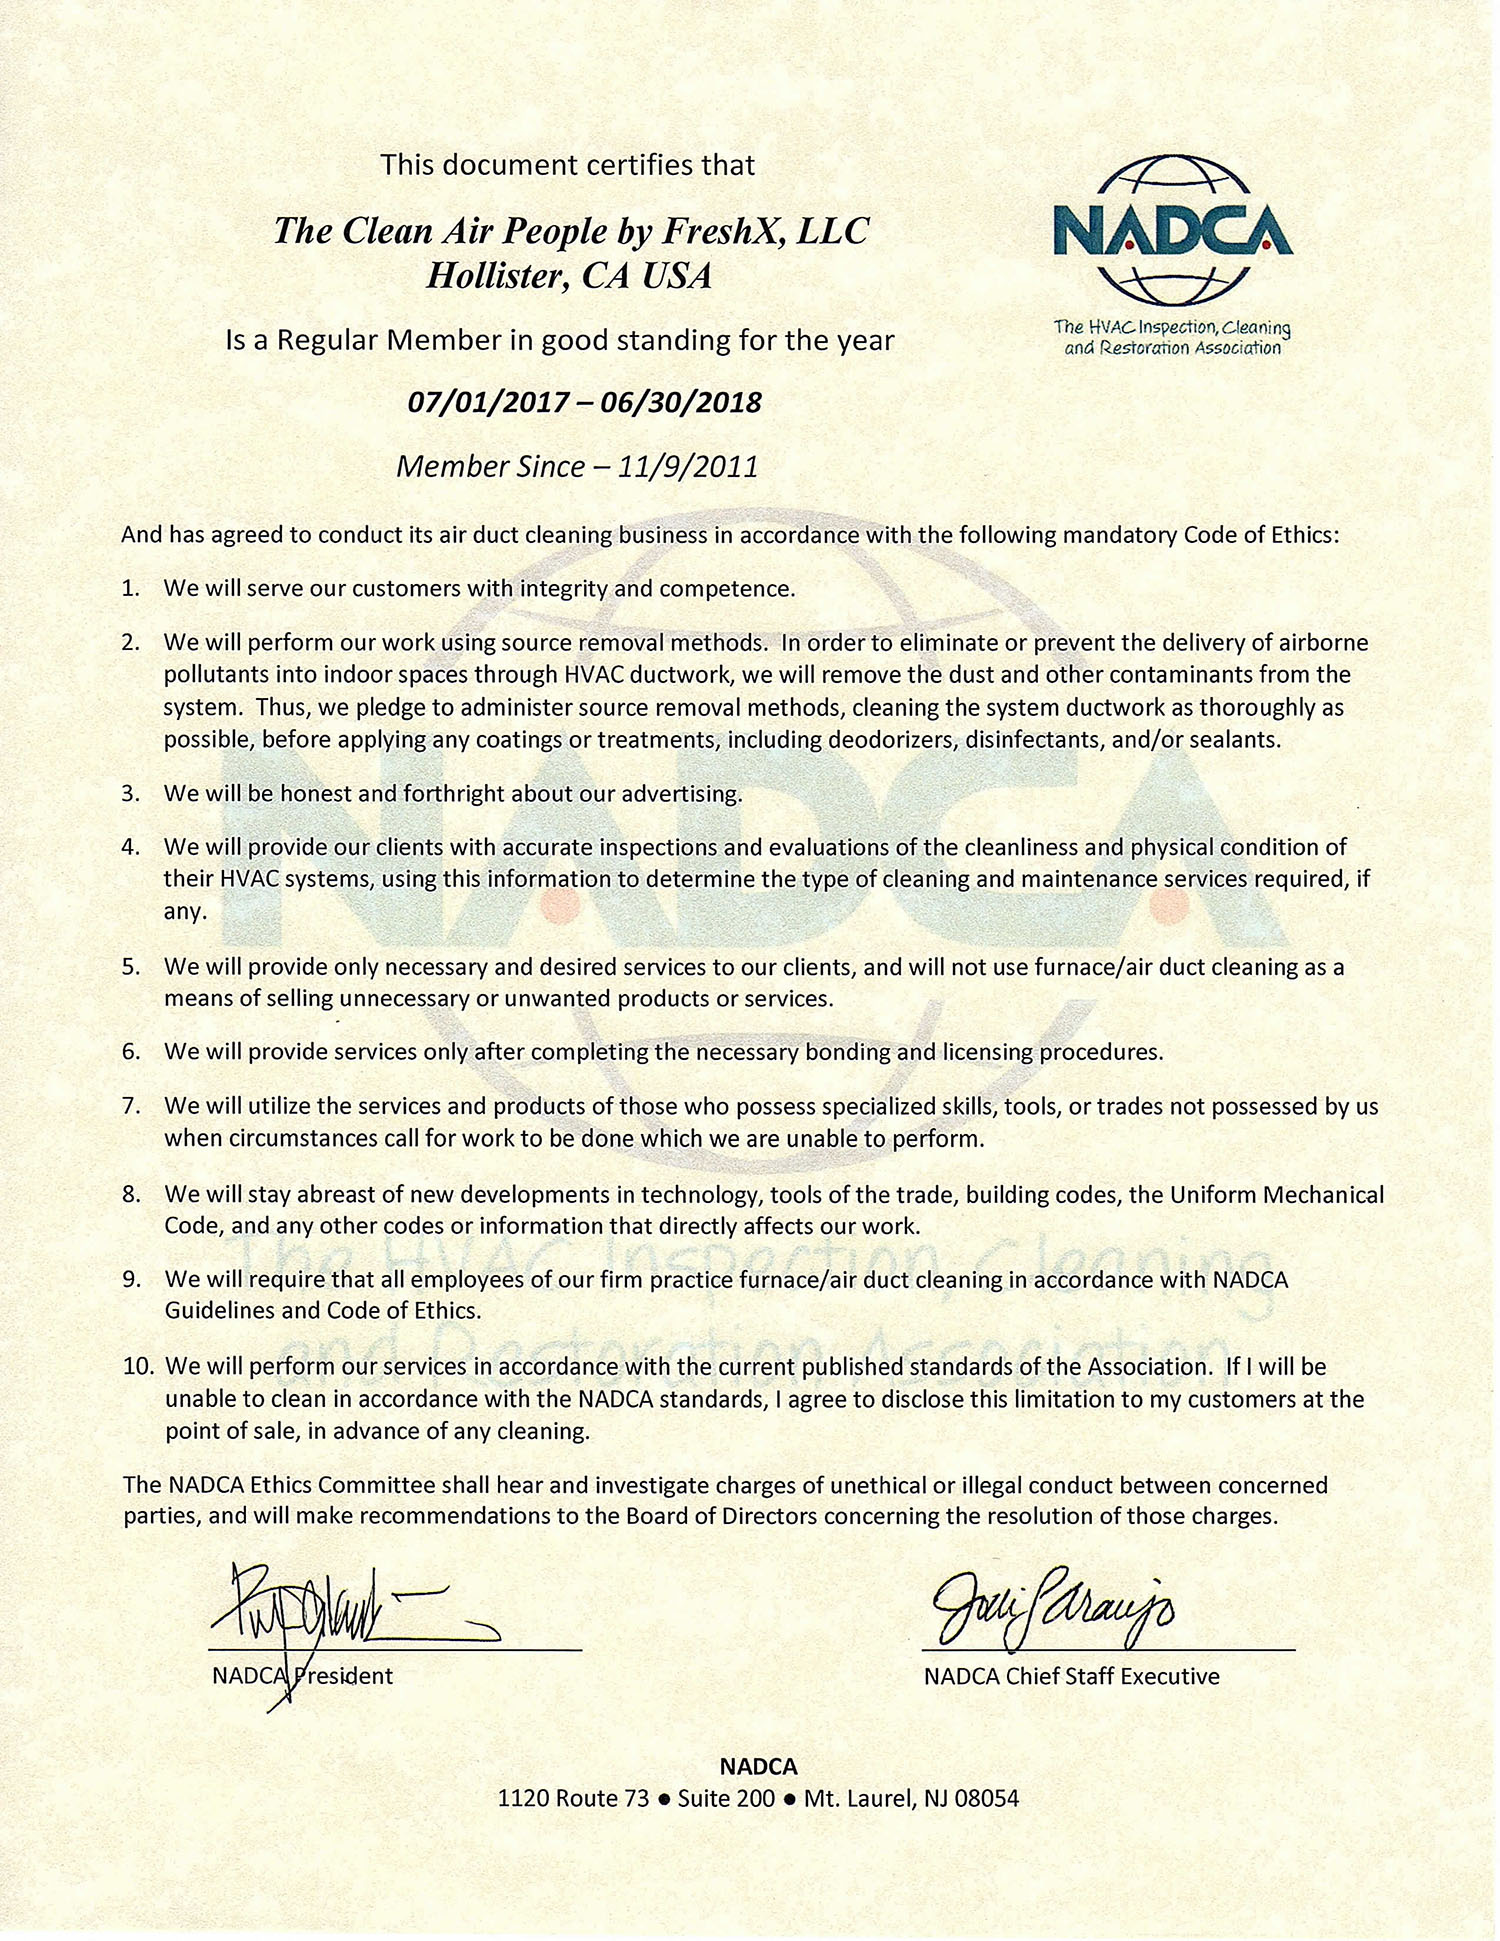 Freshx Nadca Certifications Clean Air People By Freshx